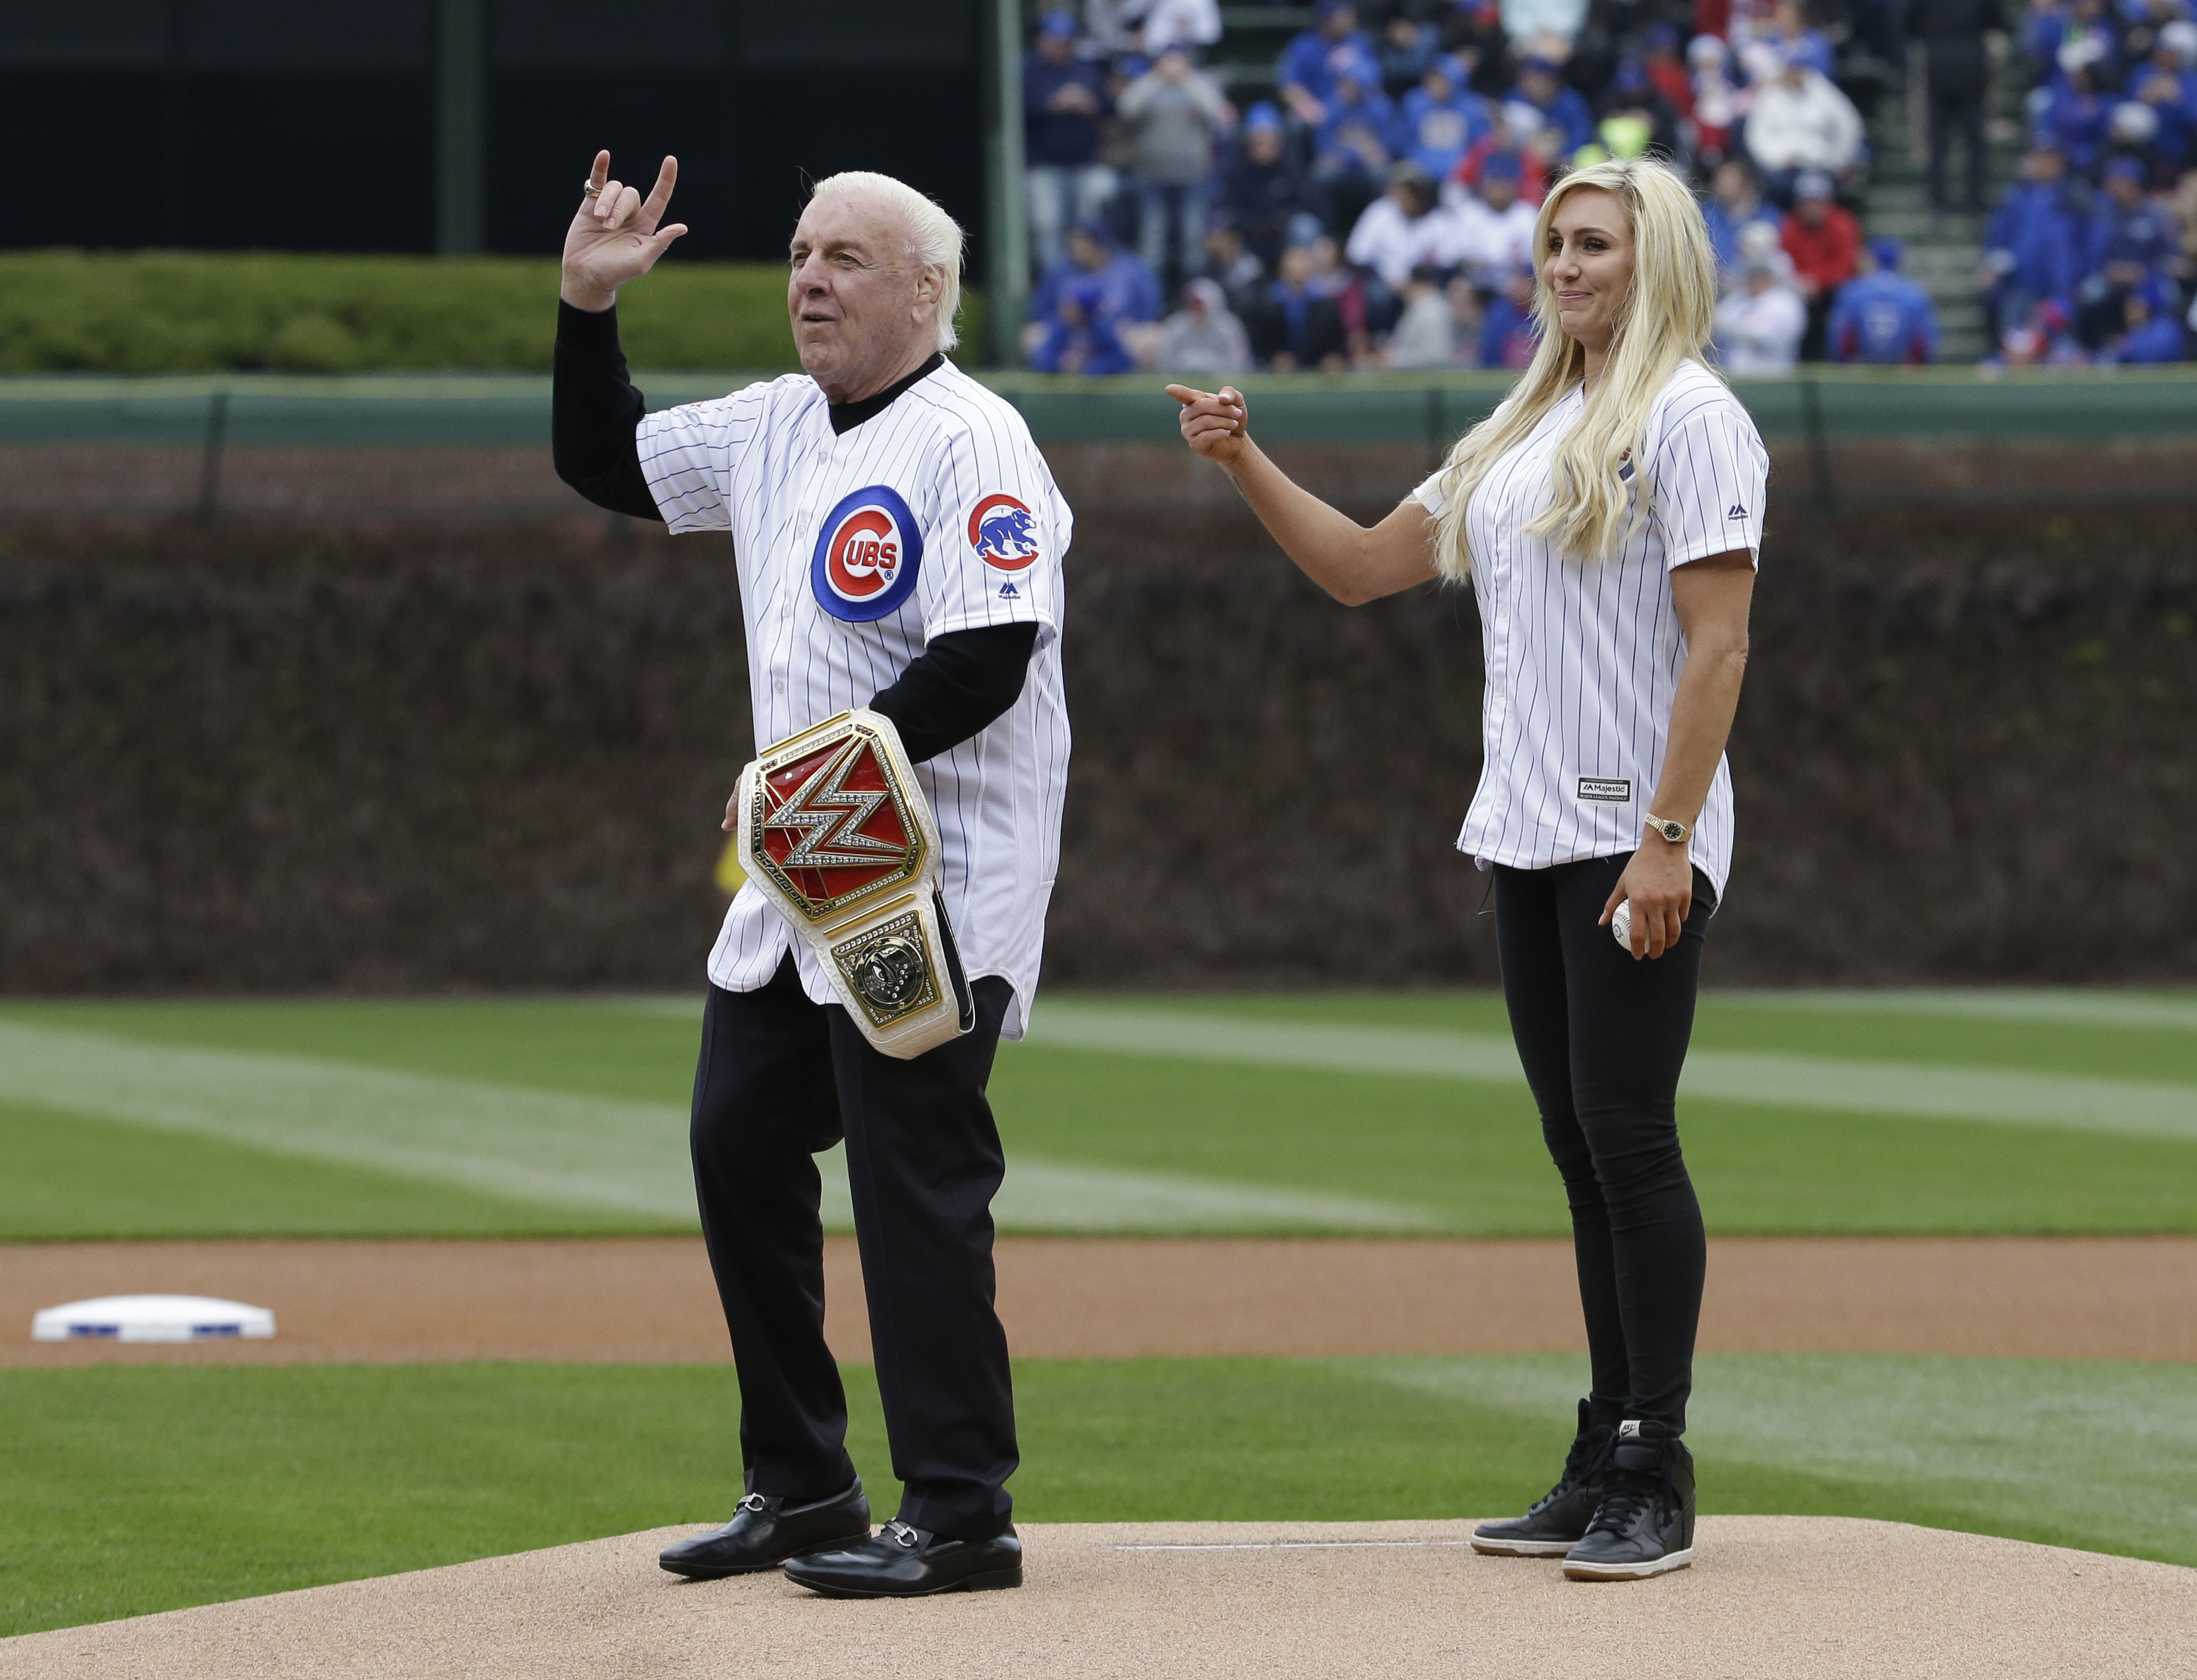 <div class='meta'><div class='origin-logo' data-origin='none'></div><span class='caption-text' data-credit=''>Ric Flair and his daughter Miss Charlotte before throwing out a ceremonial first pitch at an Atlanta Braves game, May 1, 2016, in Chicago. (AP Photo/Nam Y. Huh)</span></div>